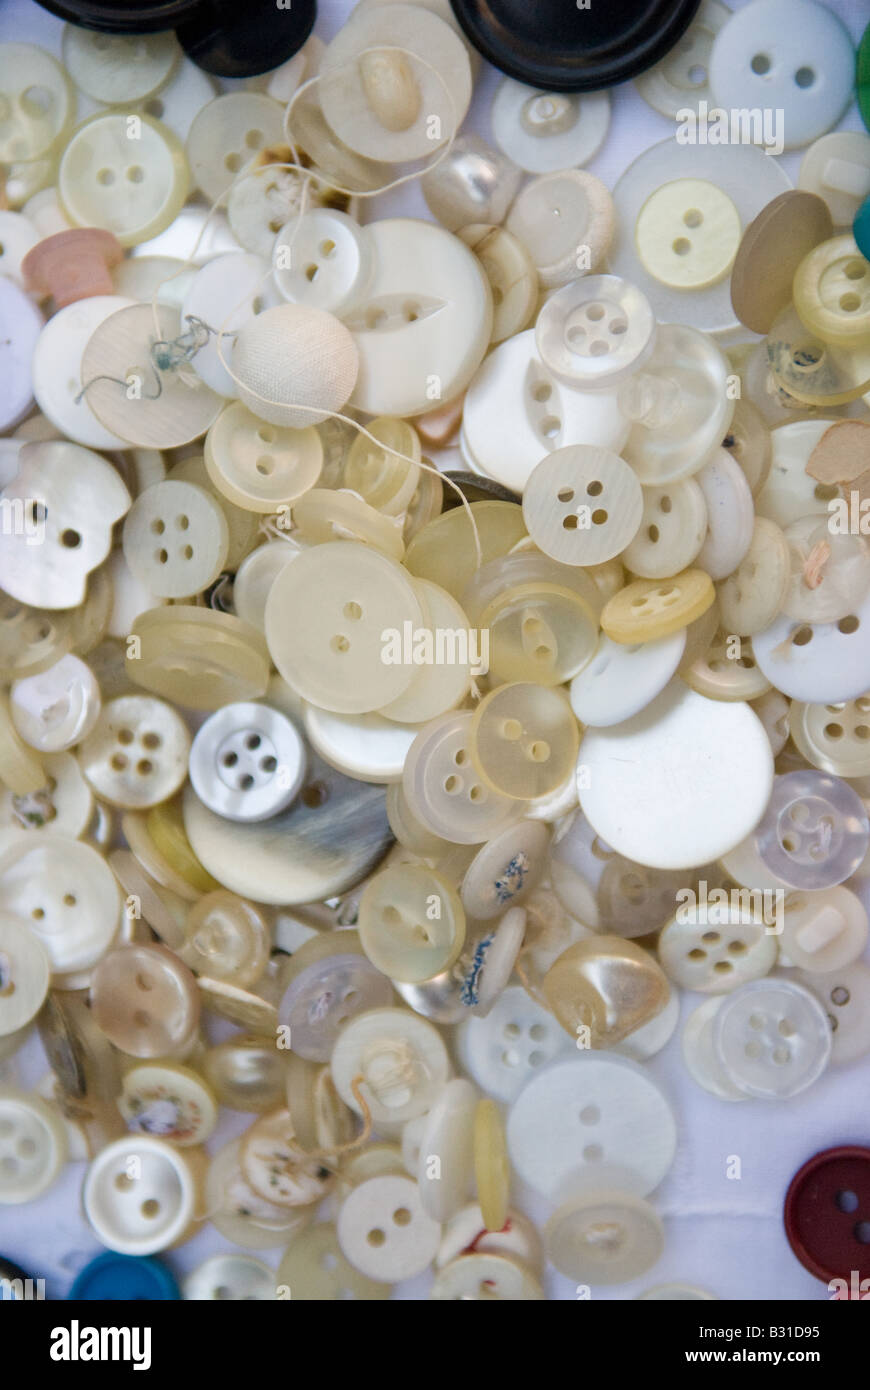 mainly white buttons - Stock Image